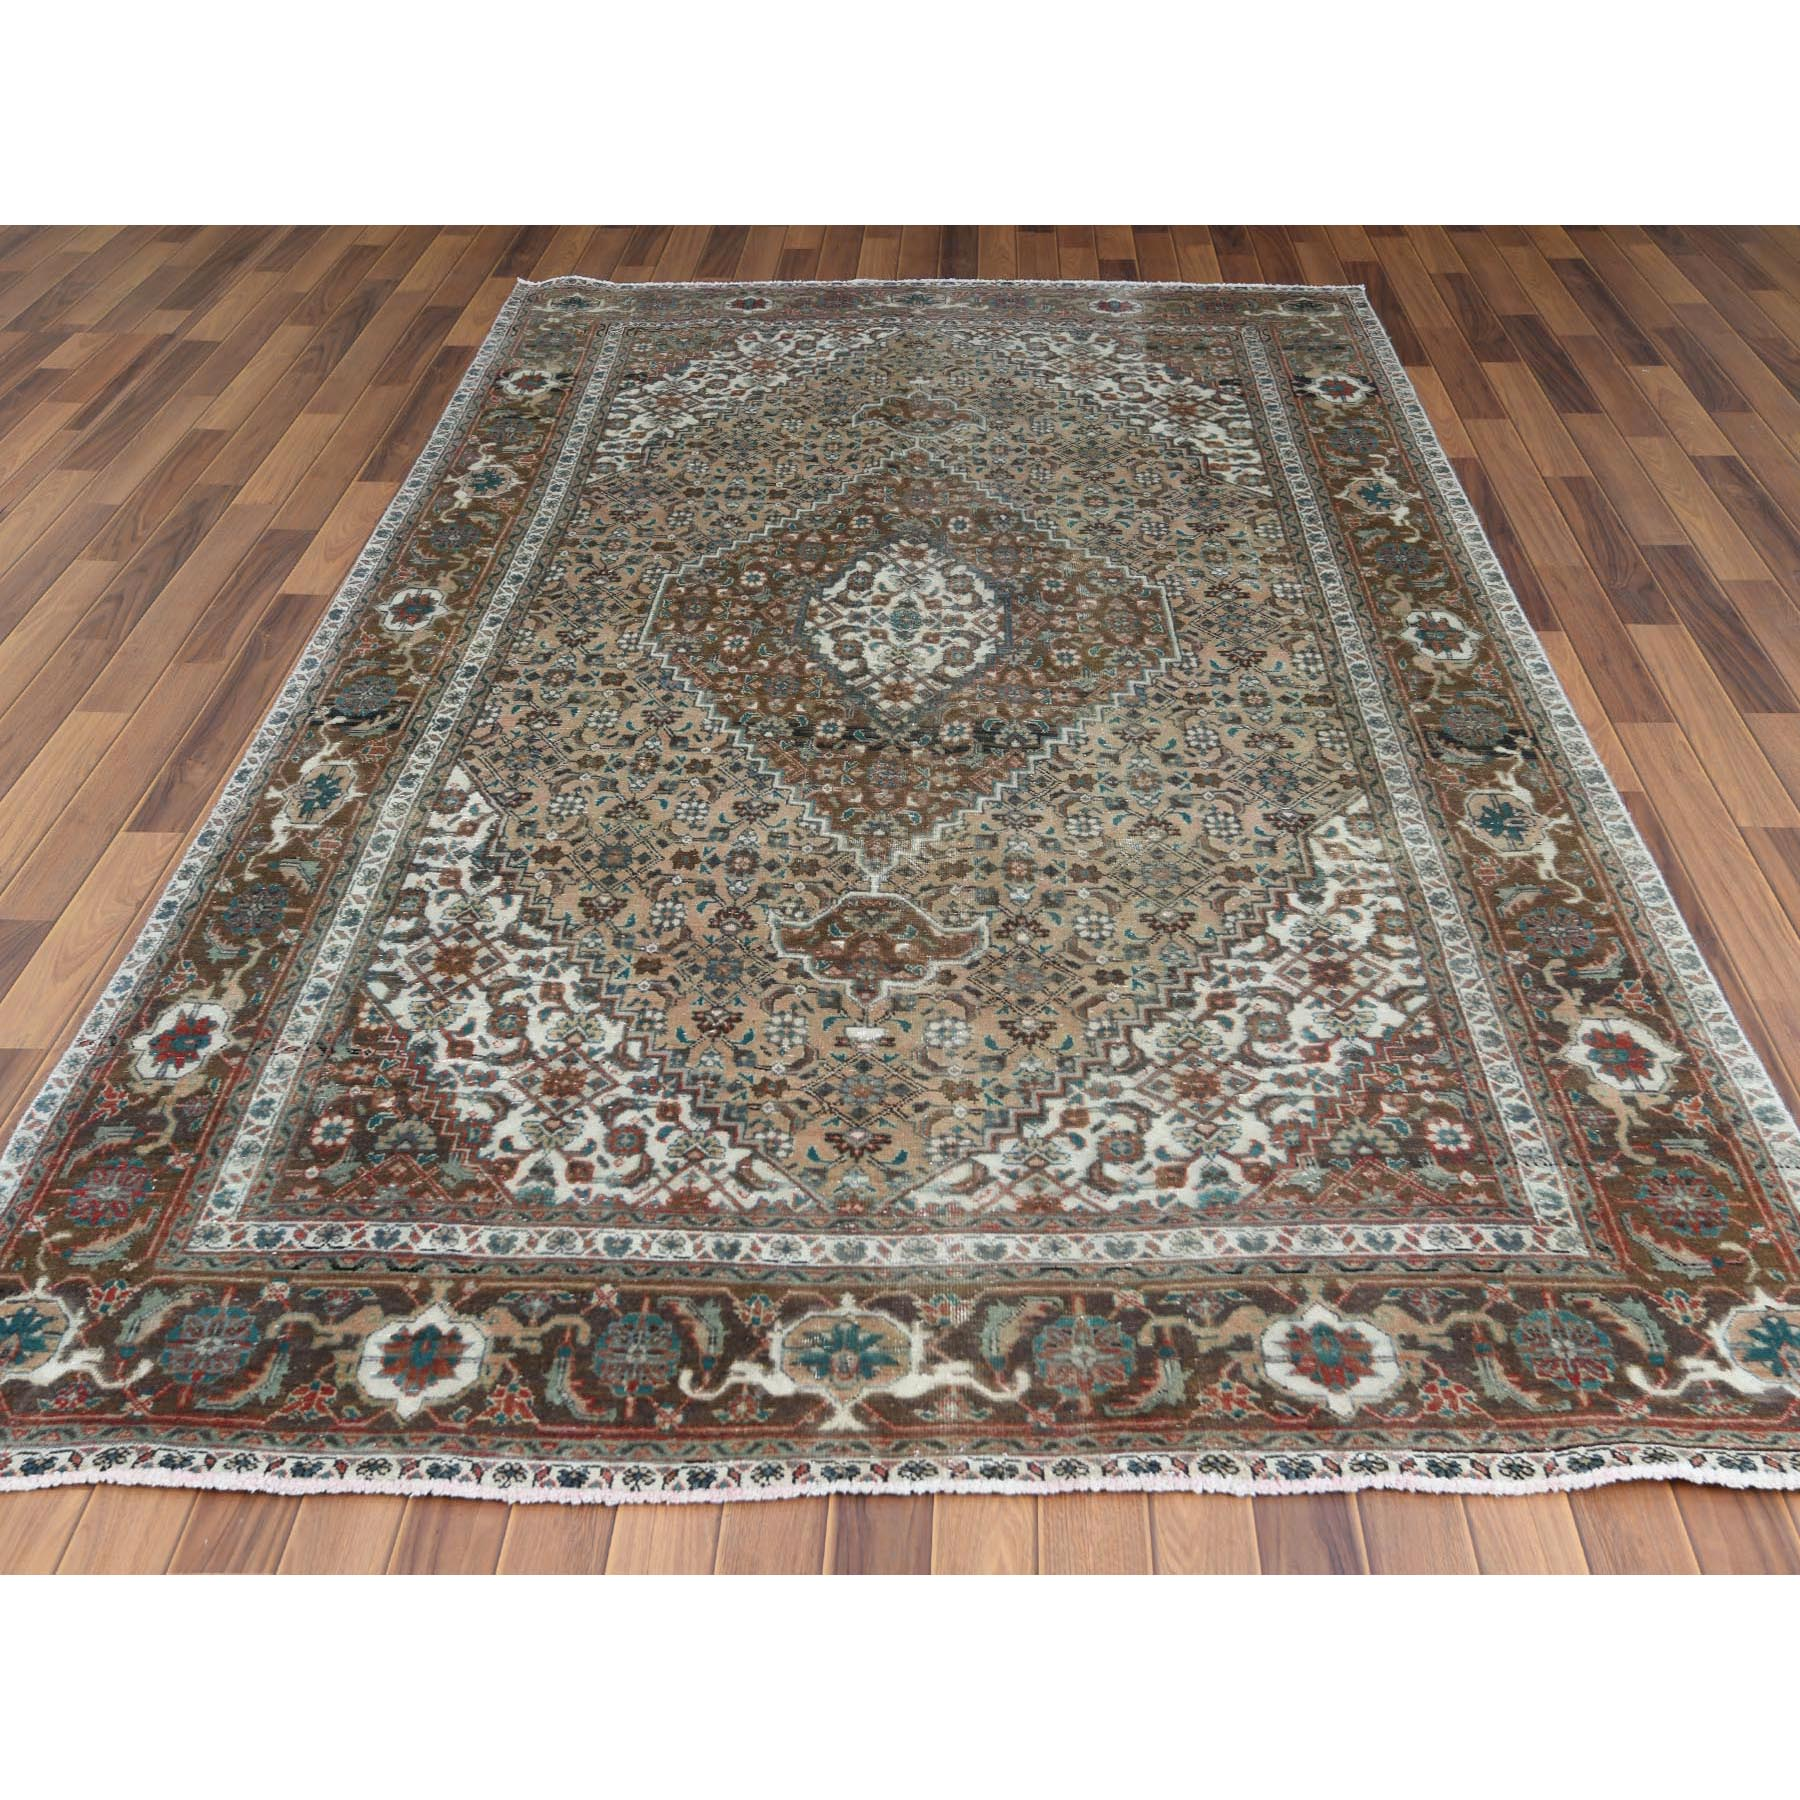 """6'2""""x10'2"""" Beige Clean Natural Wool Shabby Chic Distressed Old Persian Tabriz Mahi Medallion Design Hand Knotted Oriental Rug"""